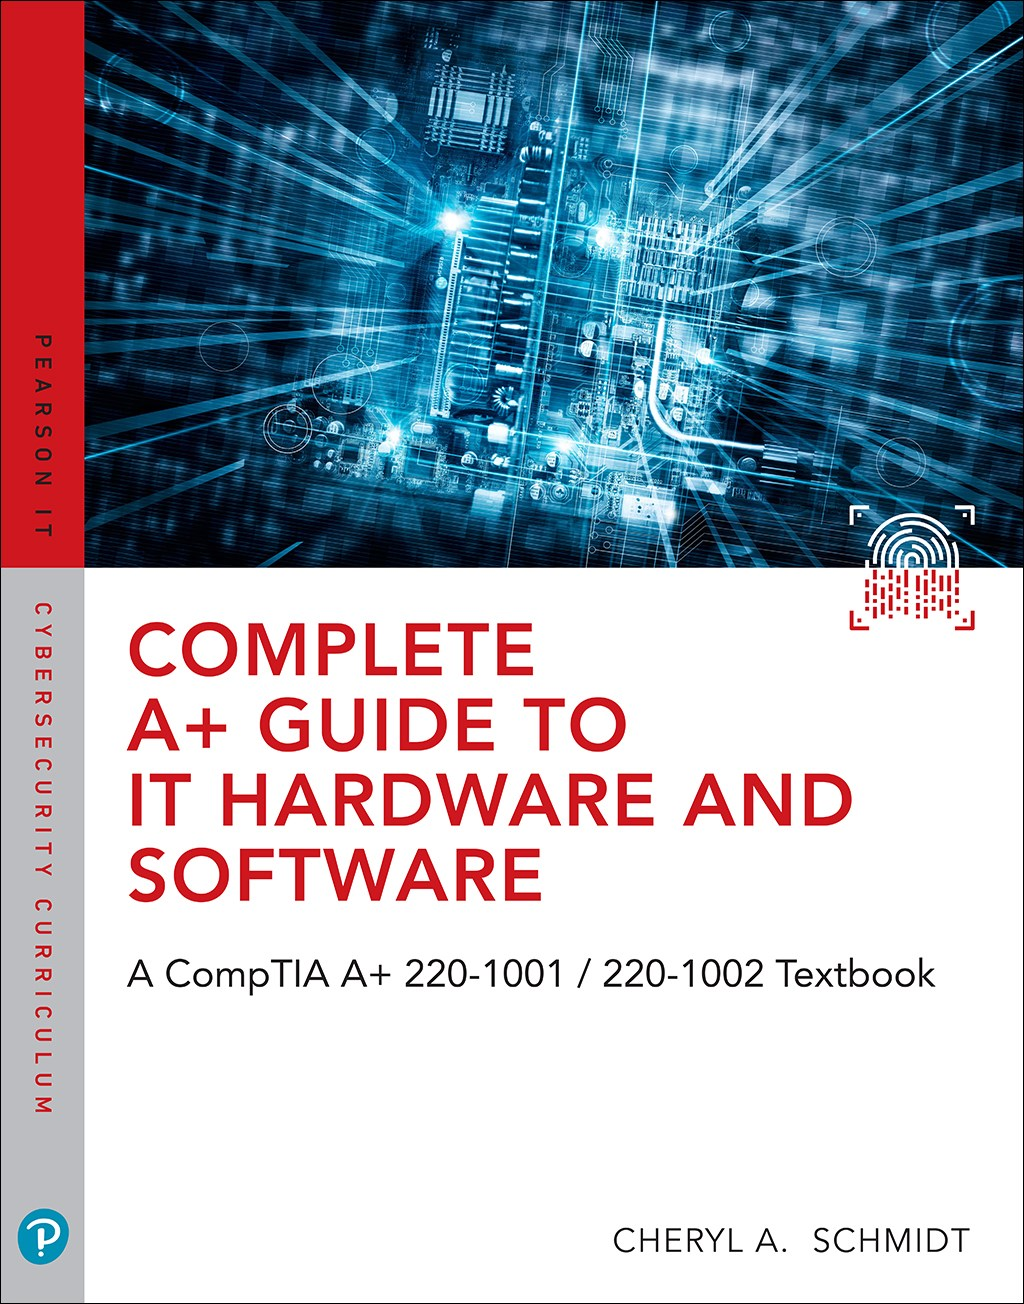 Complete A+ Guide to IT Hardware and Software: AA CompTIA A+ Core 1 (220-1001) & CompTIA A+ Core 2 (220-1002) Textbook, 8th Edition